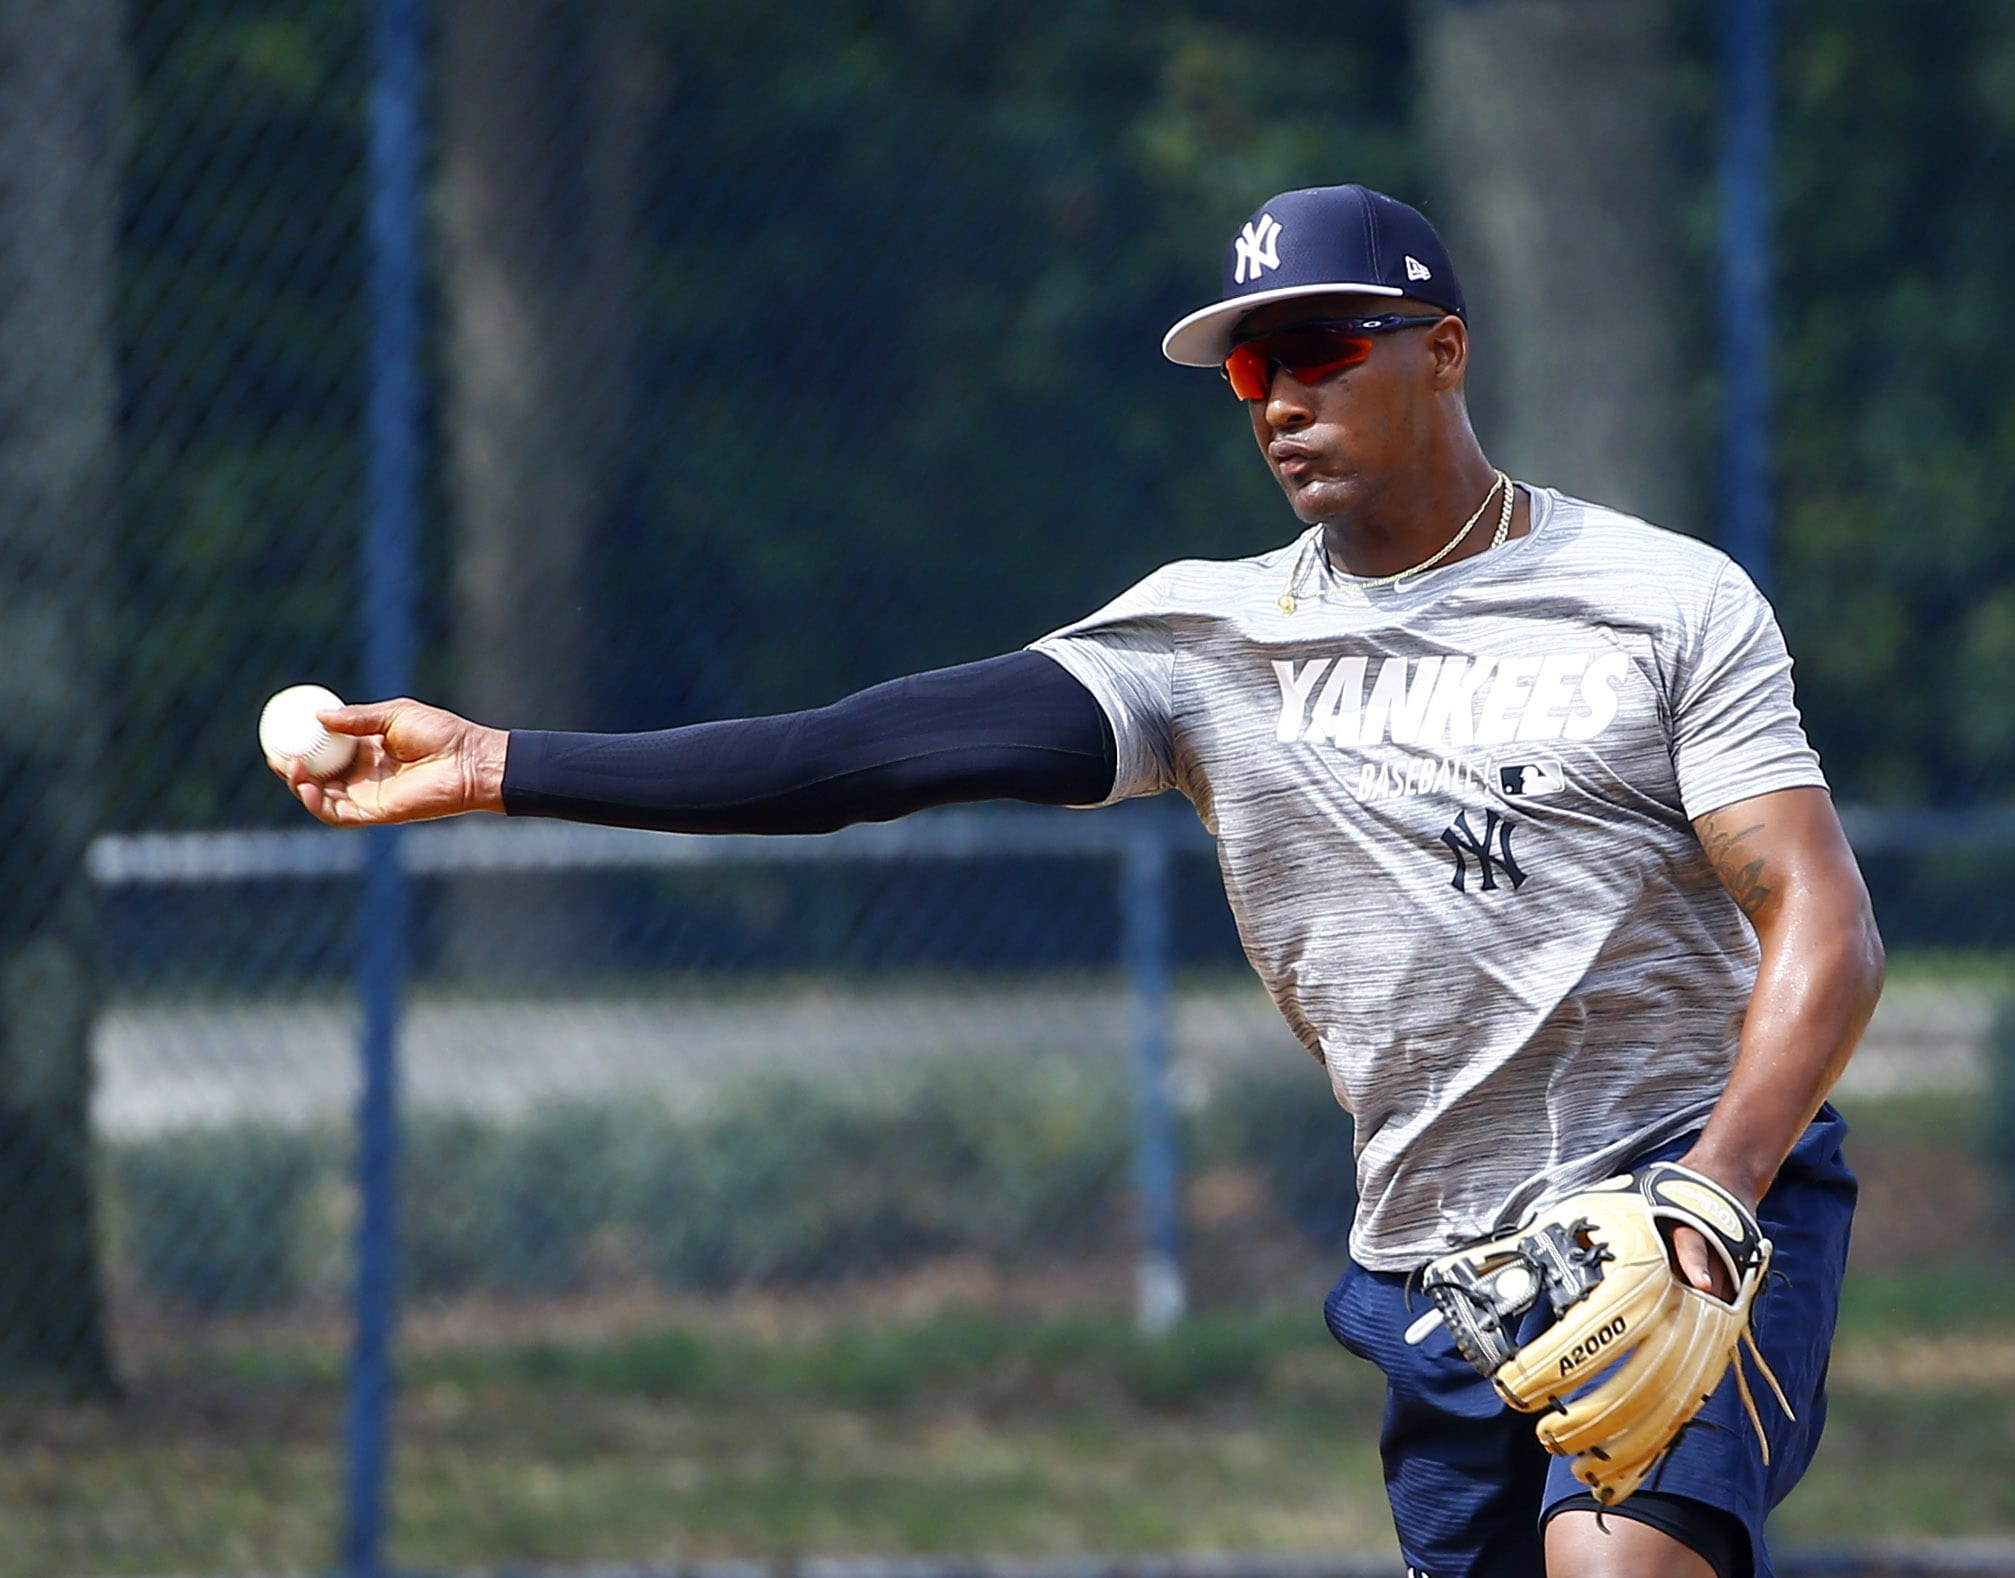 Miguel Andujar placed on 10-day injured list with shoulder injury